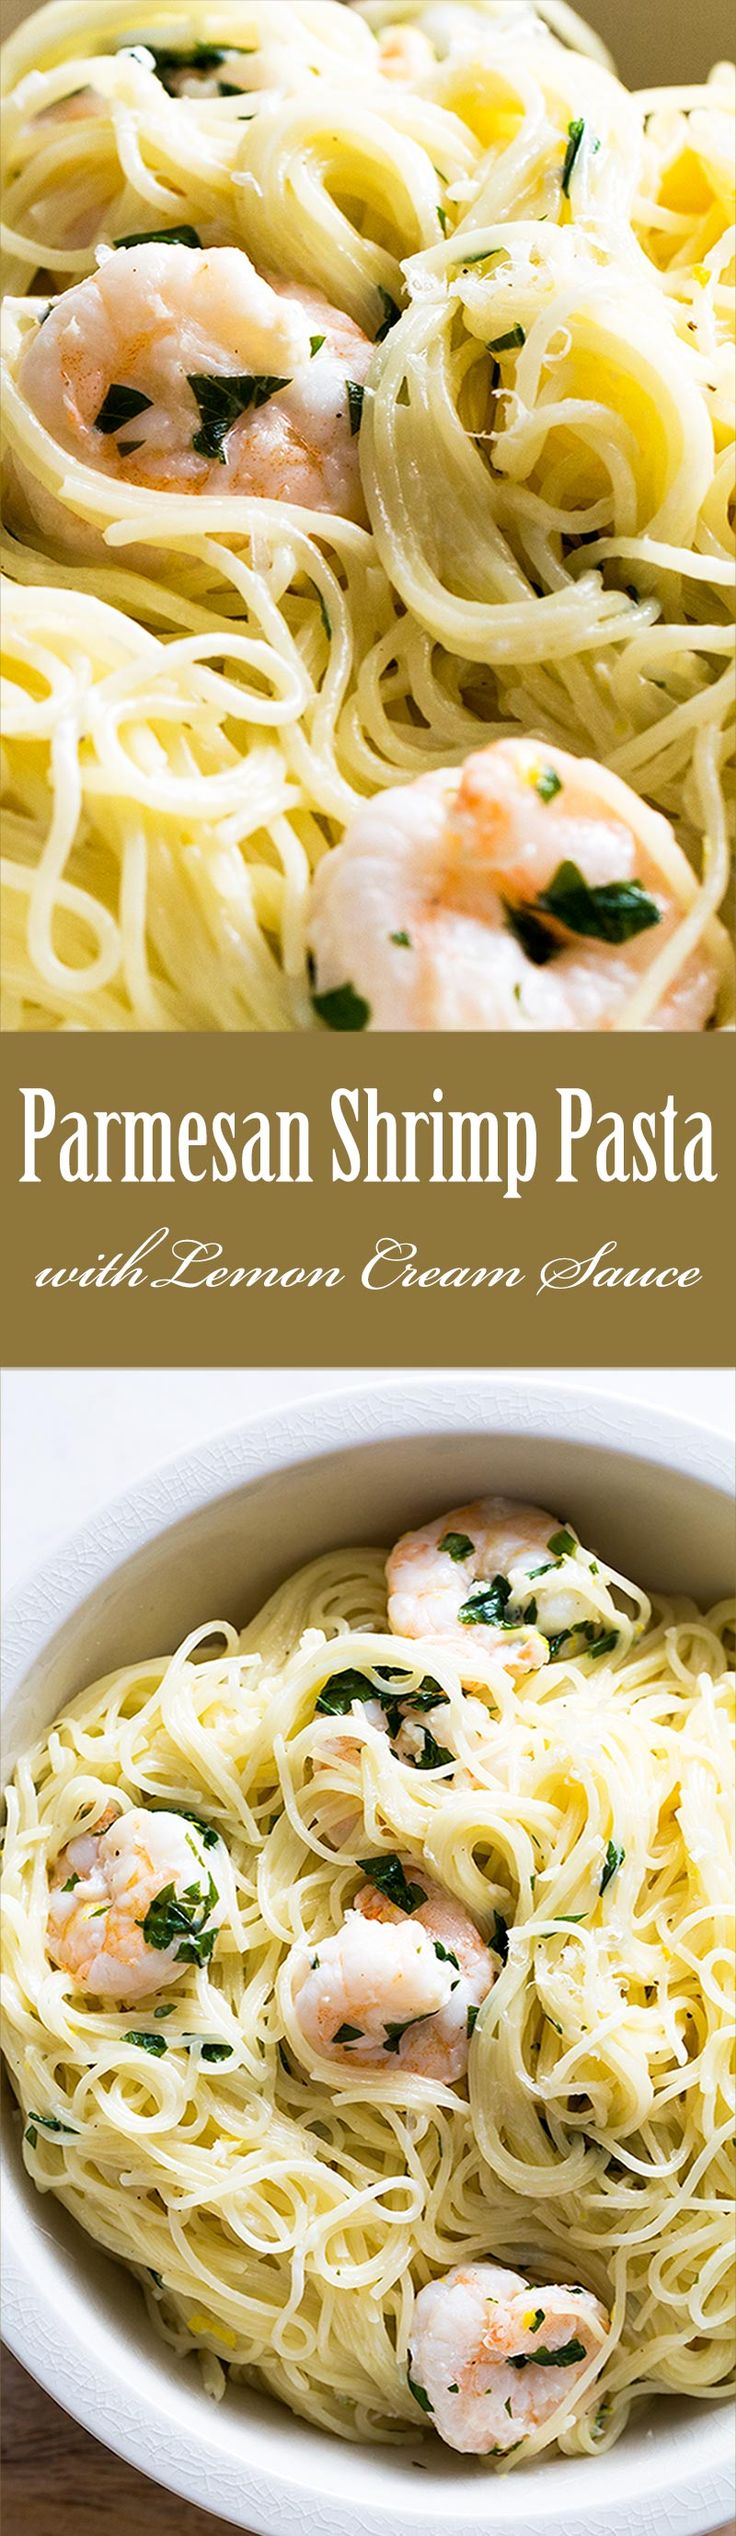 EASY! Cooks up in 15 minutes. Angel hair pasta with shrimp and a delicious parmesan lemon cream sauce. On SimplyRecipes.com